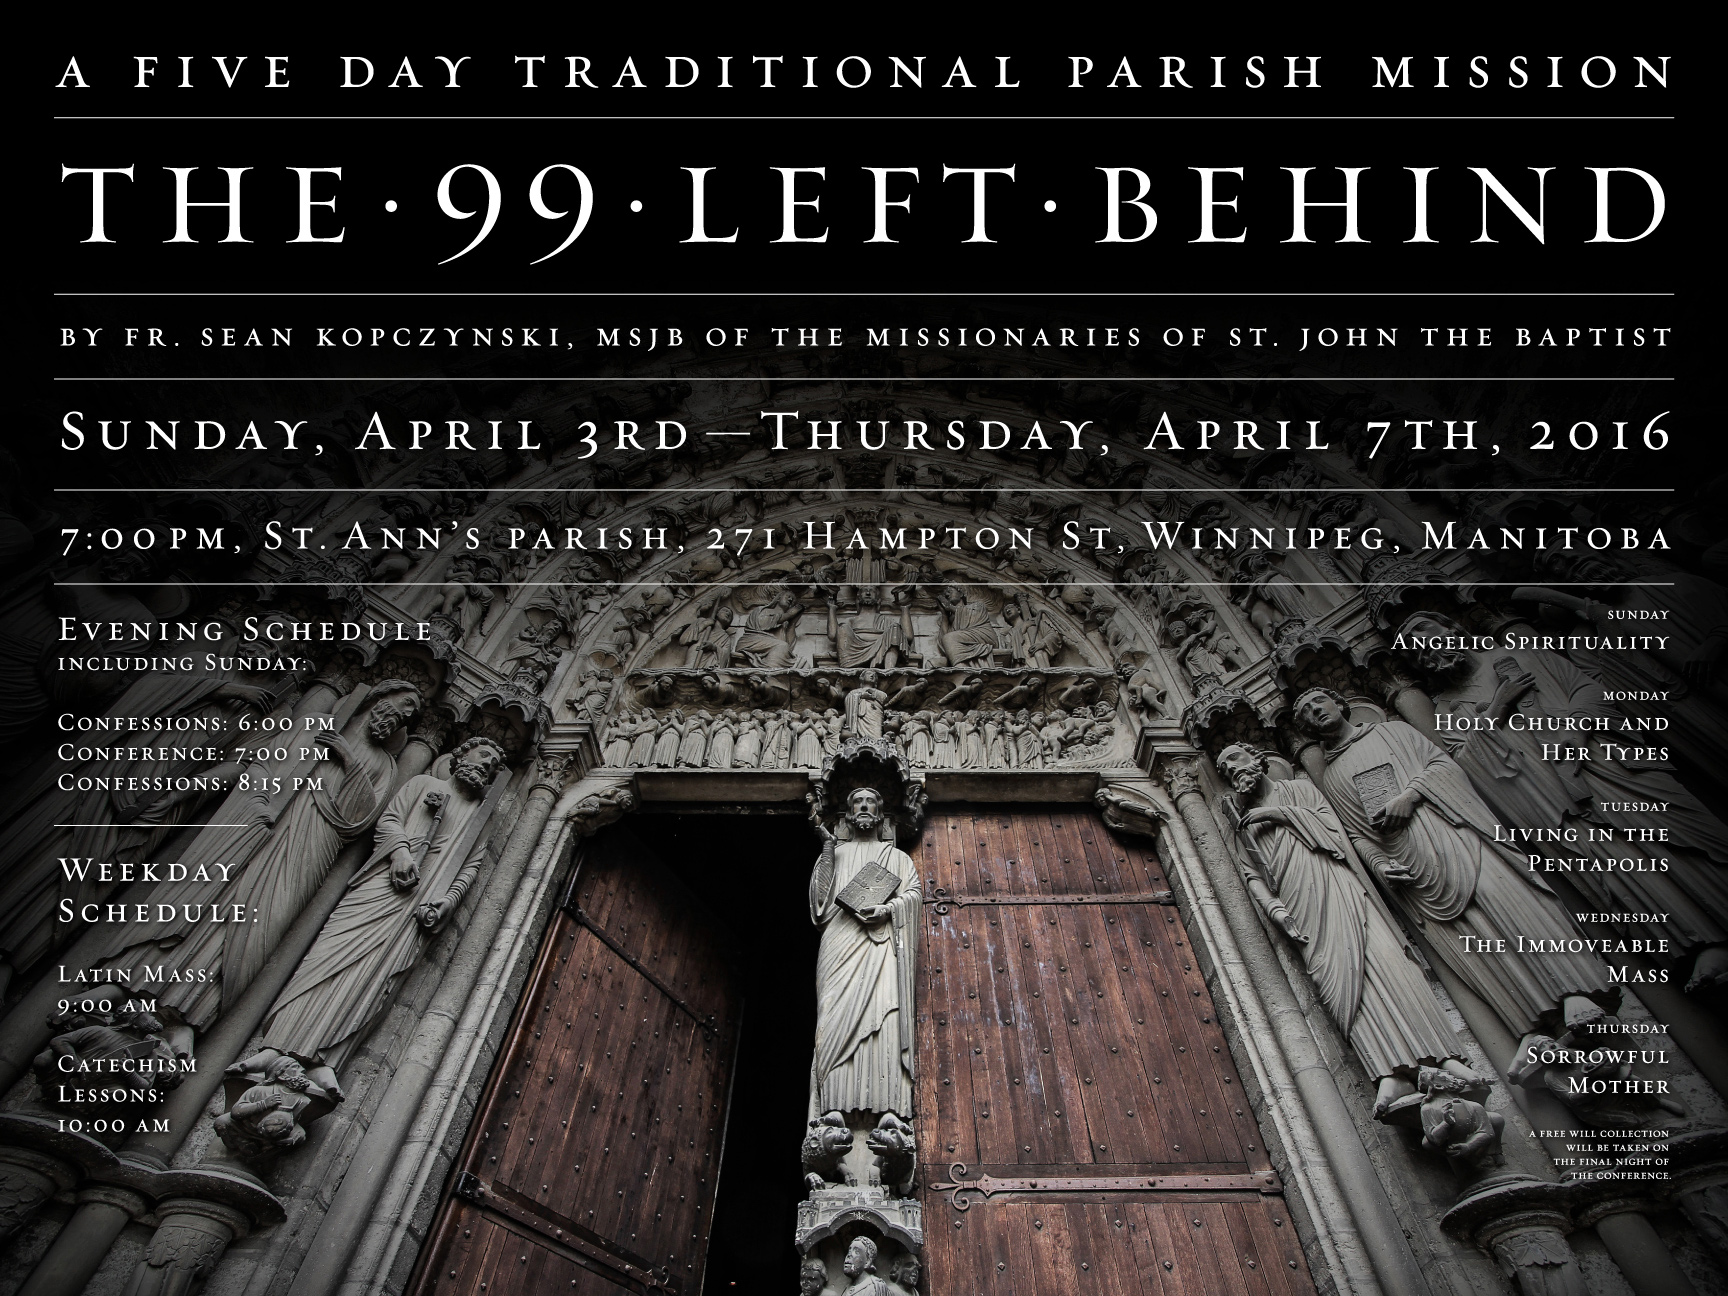 ParishMission_Poster_3_medium.jpg